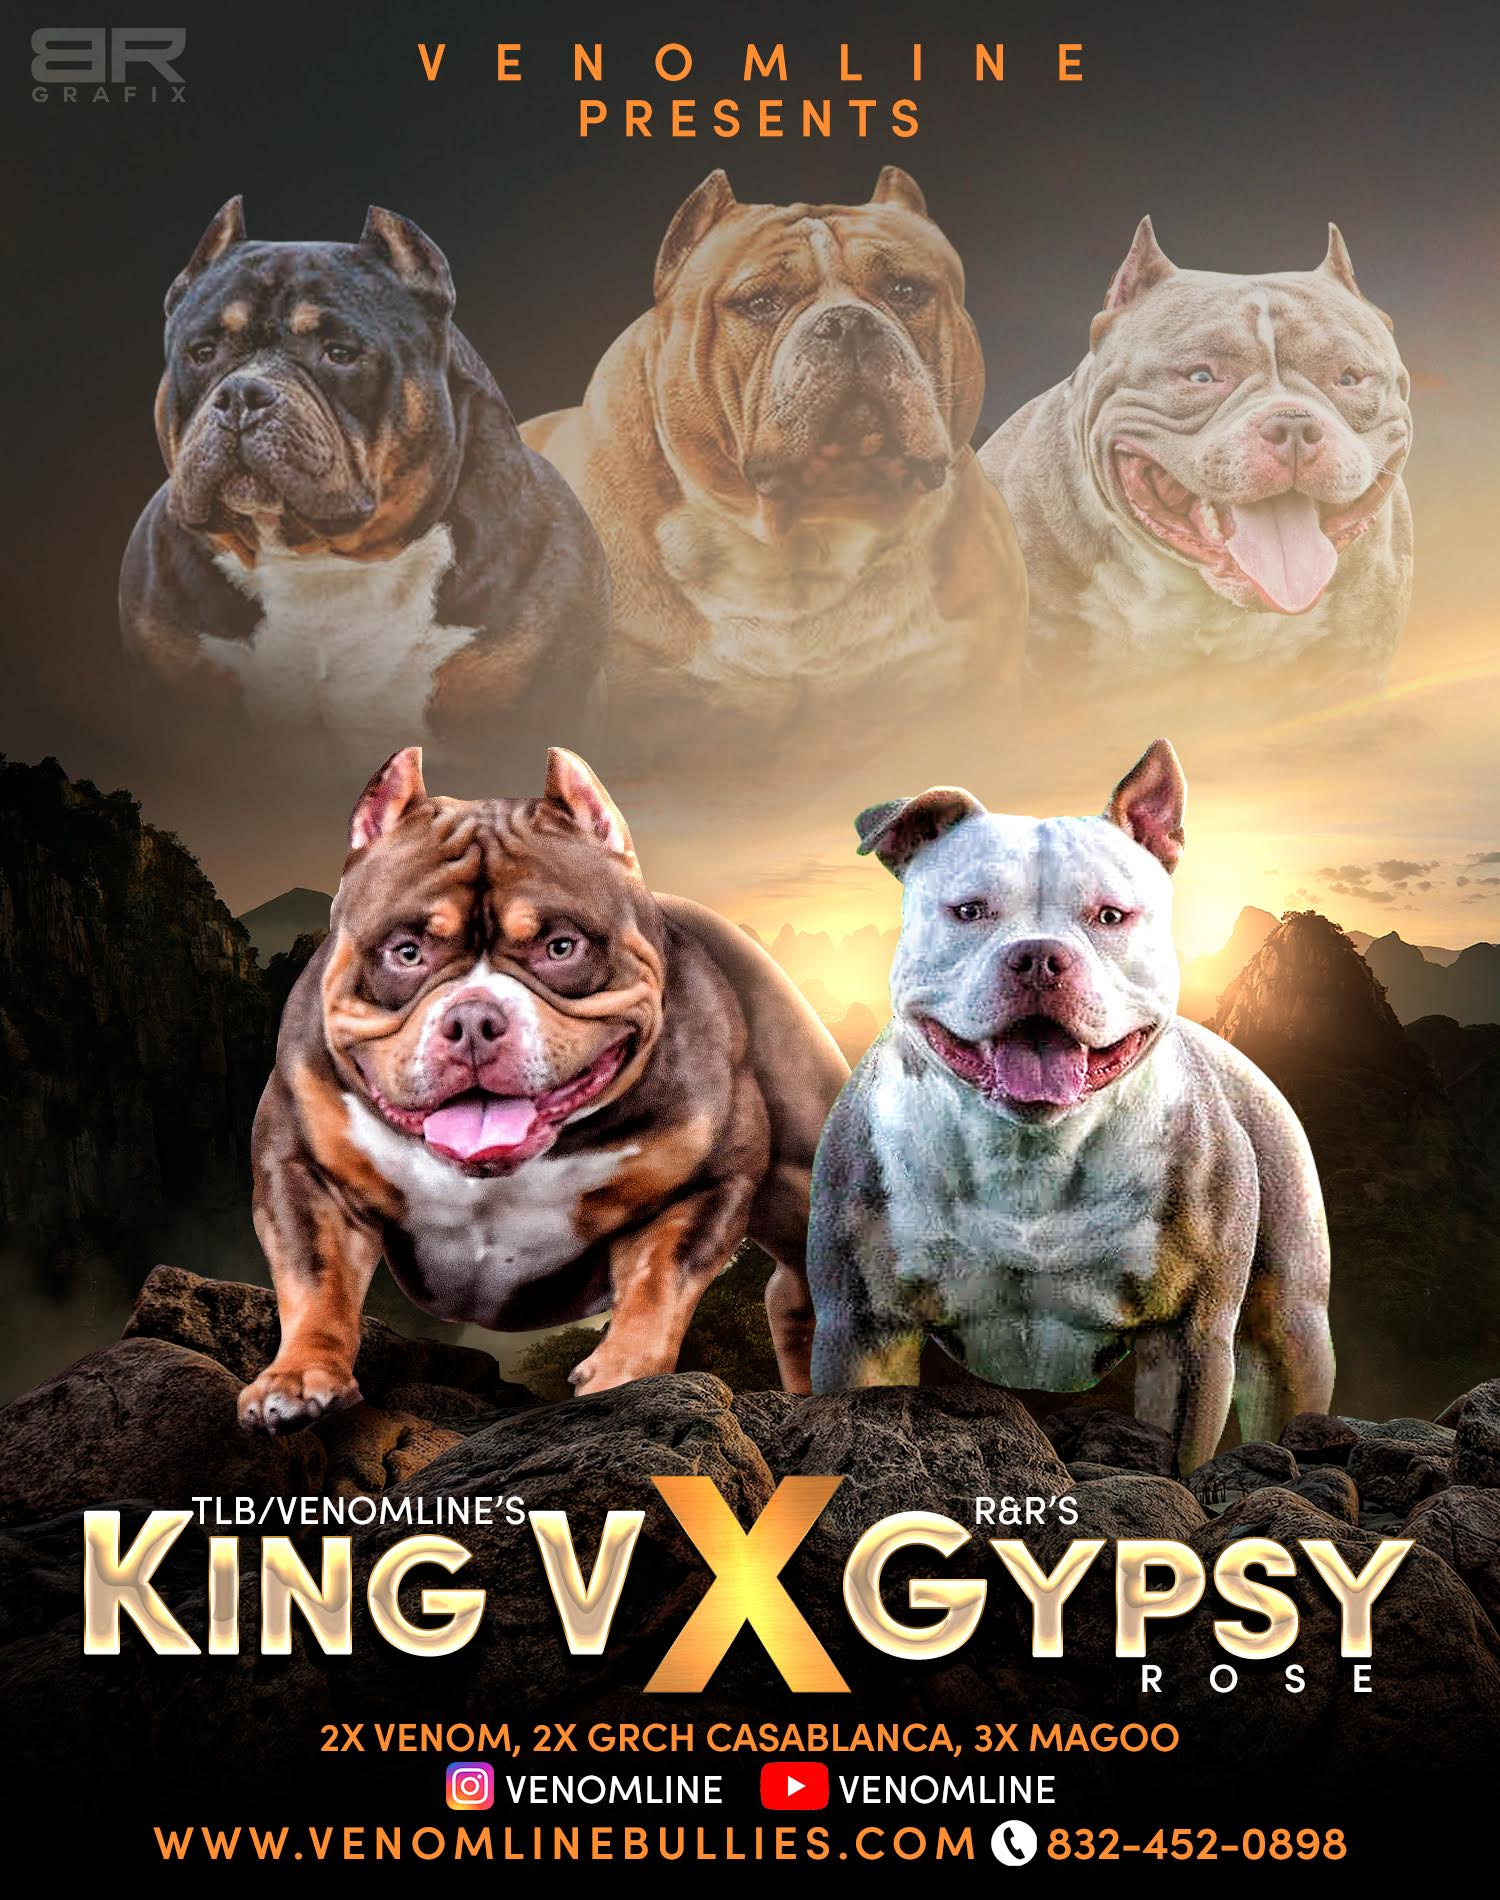 American Bully Breeders, Pocket Bully Kennel, Bully King Magazine, ABKC Champions, Pocket Bully Stud Service, American Bully Studs, Top Pocket Bully, Extreme Pocket Bully